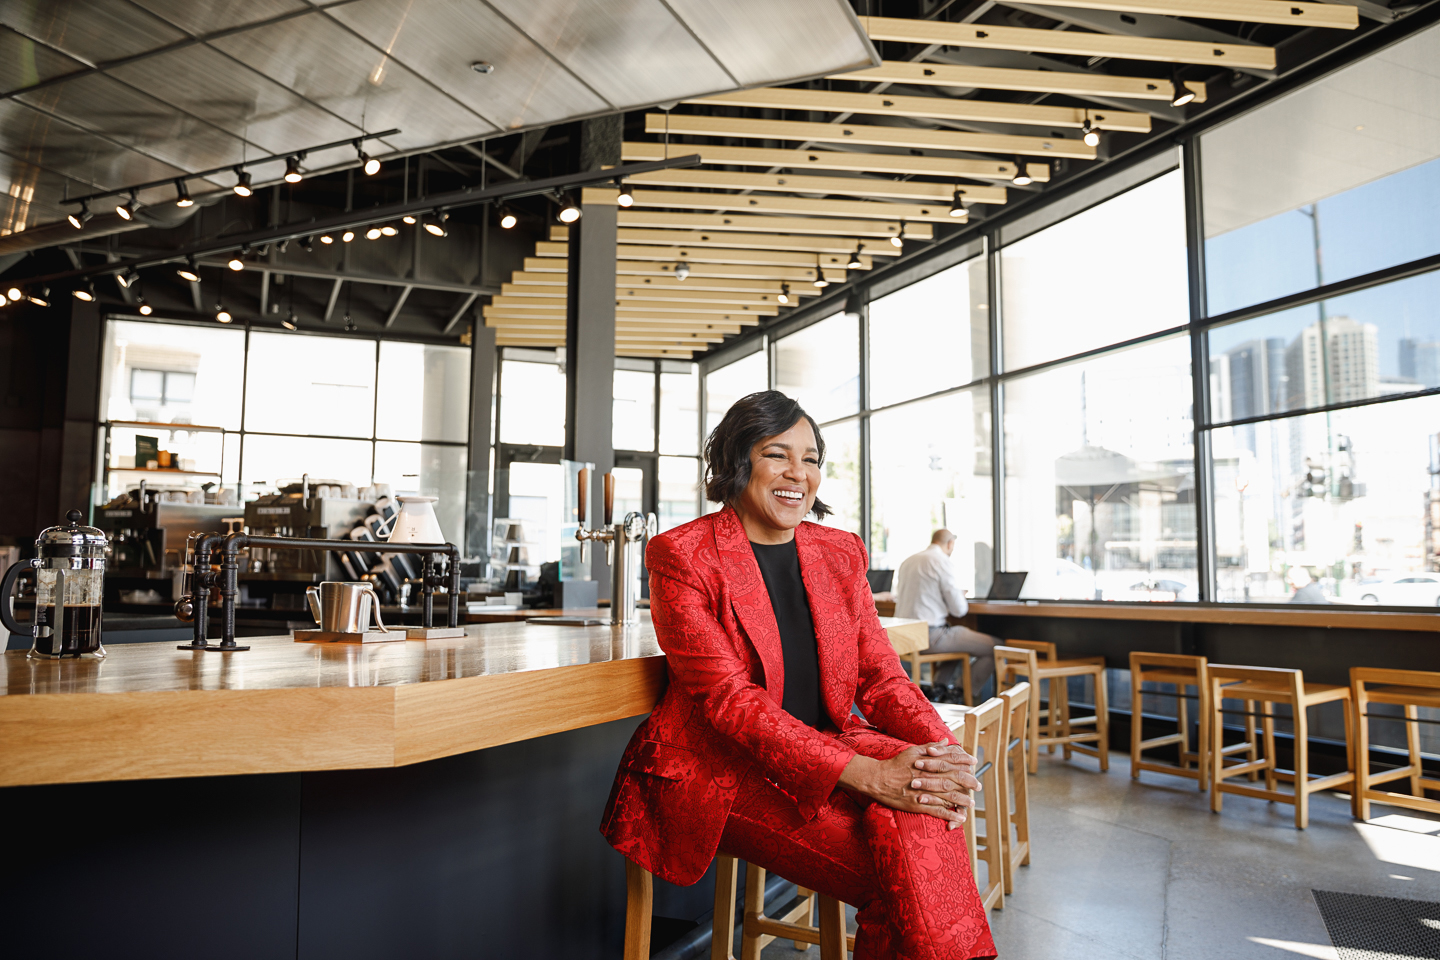 Sara Stathas' photo of Roz Brewer in a red suit, sitting with her legs crossed at the Starbucks counter